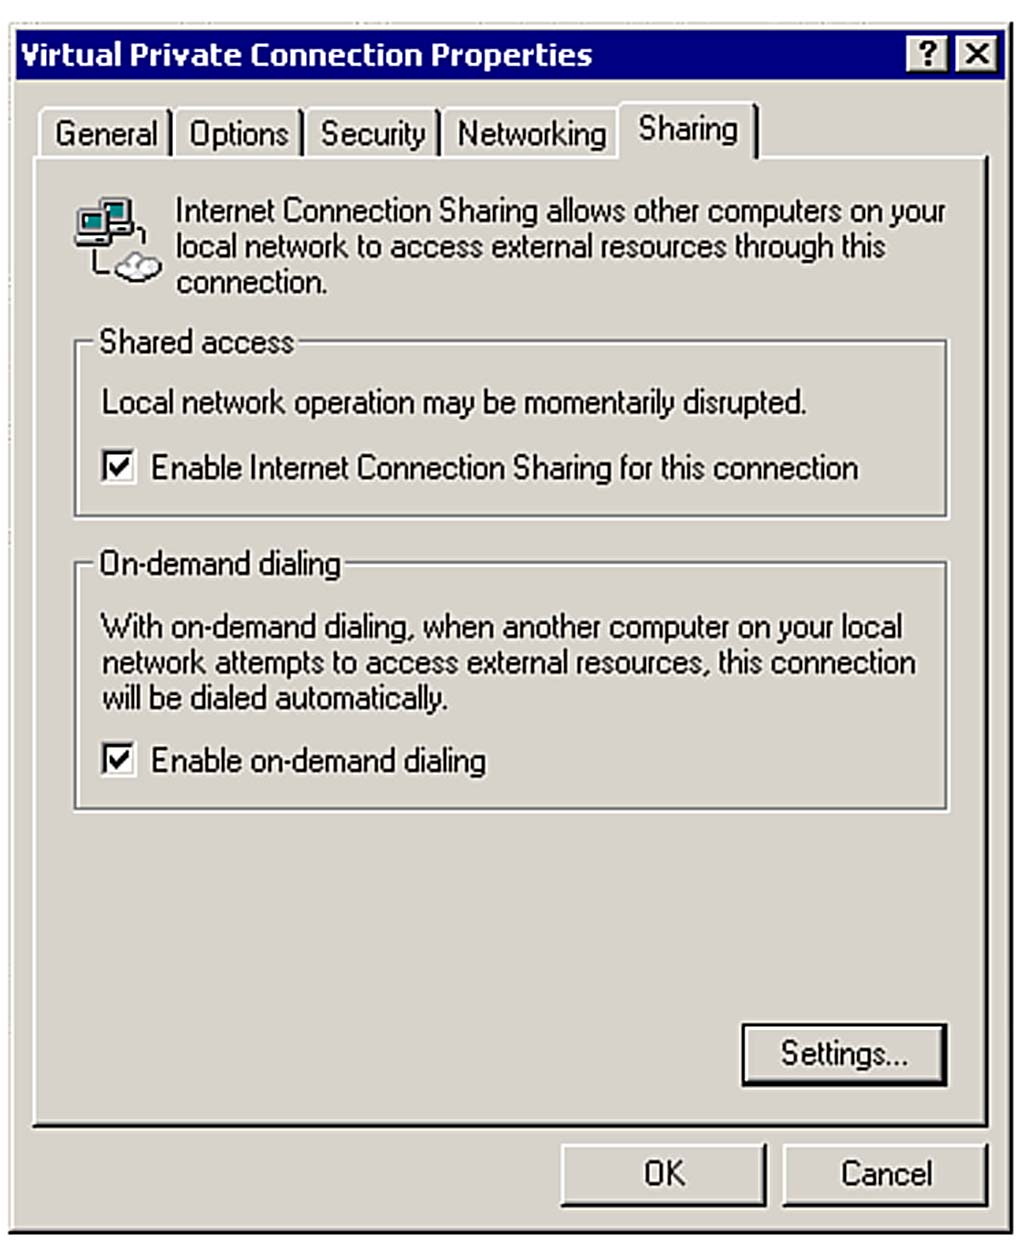 Windows 10 enable ics - Security Topologies Introduction To Infrastructure Security Pearson It Certification